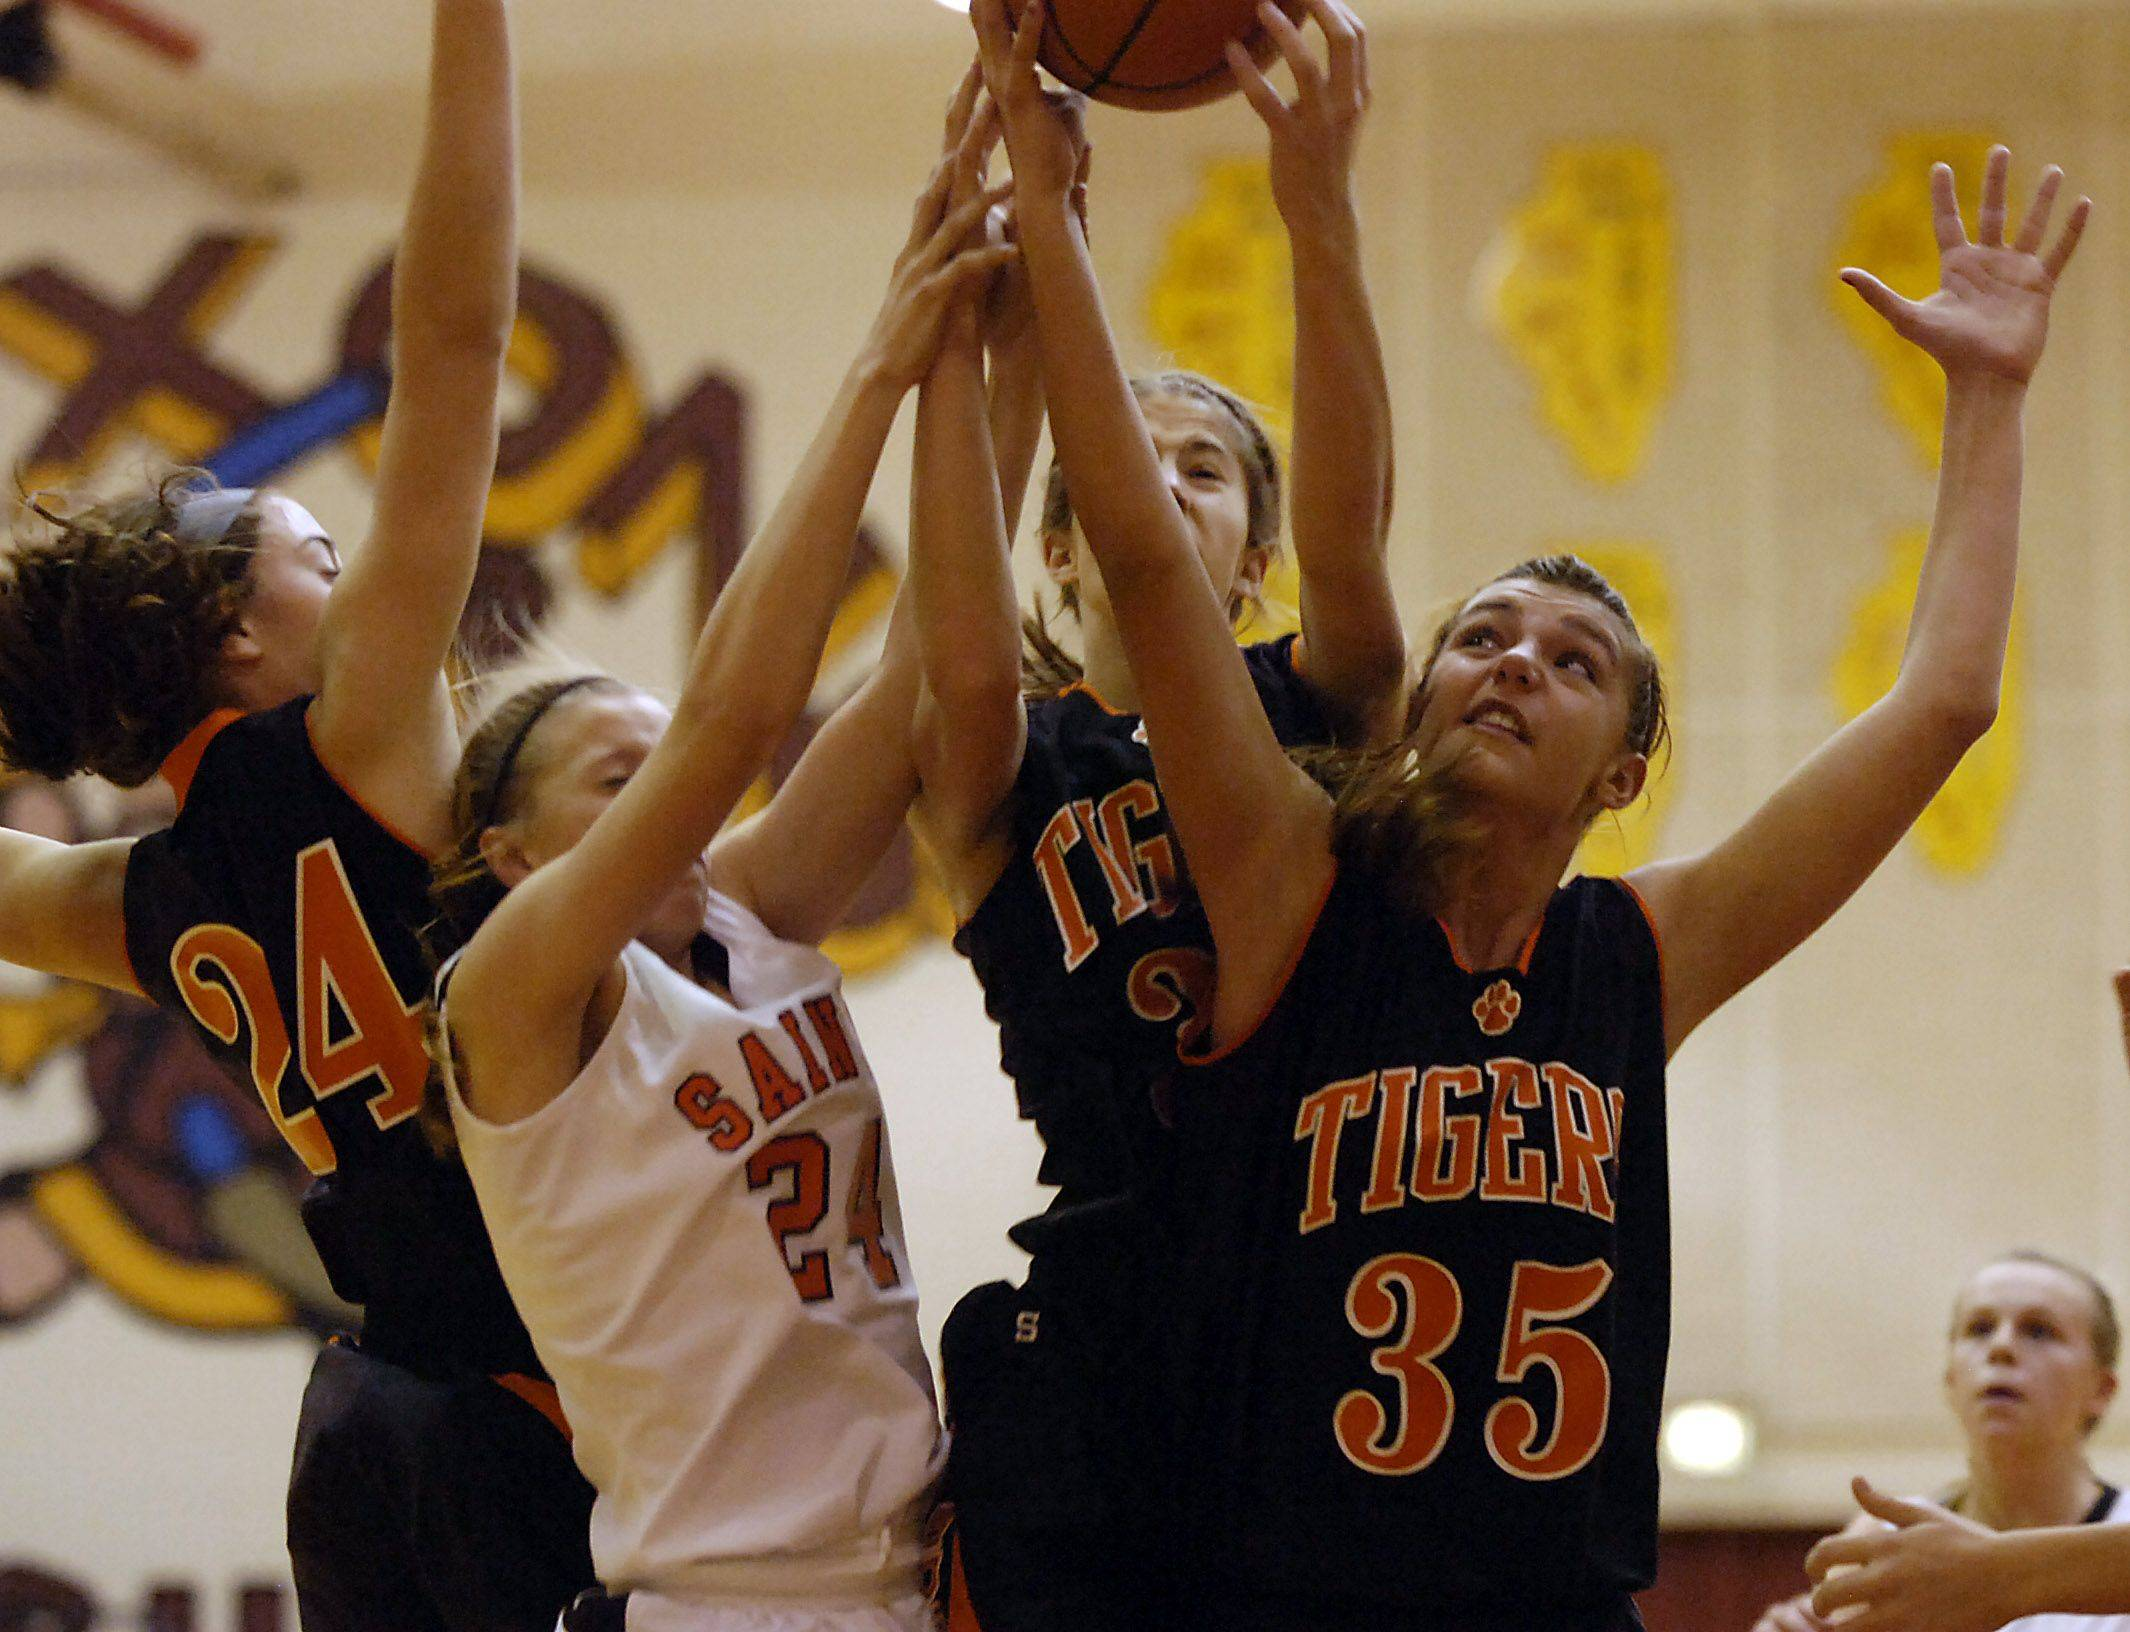 Wheaton Warrenville South's Allie Zappia, right, battles for the rebound with teammate Kasey Gassensmith and St. Charles East's Laney Deckrow in the girls basketball tournament in Schaumburg.